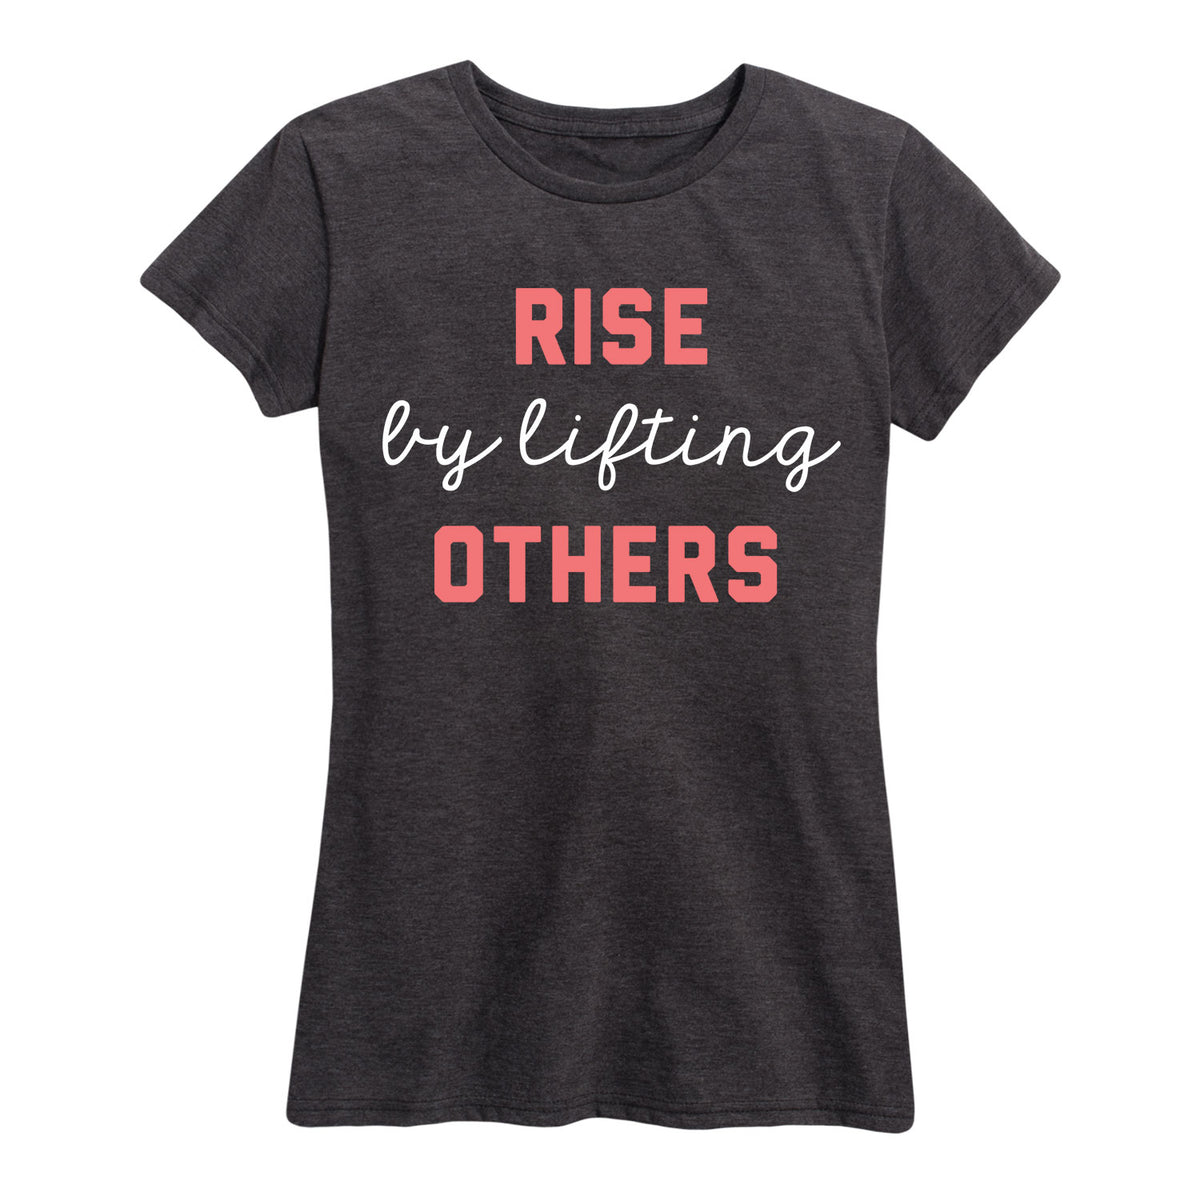 Rise By Lifting Others - Women's Short Sleeve T-Shirt